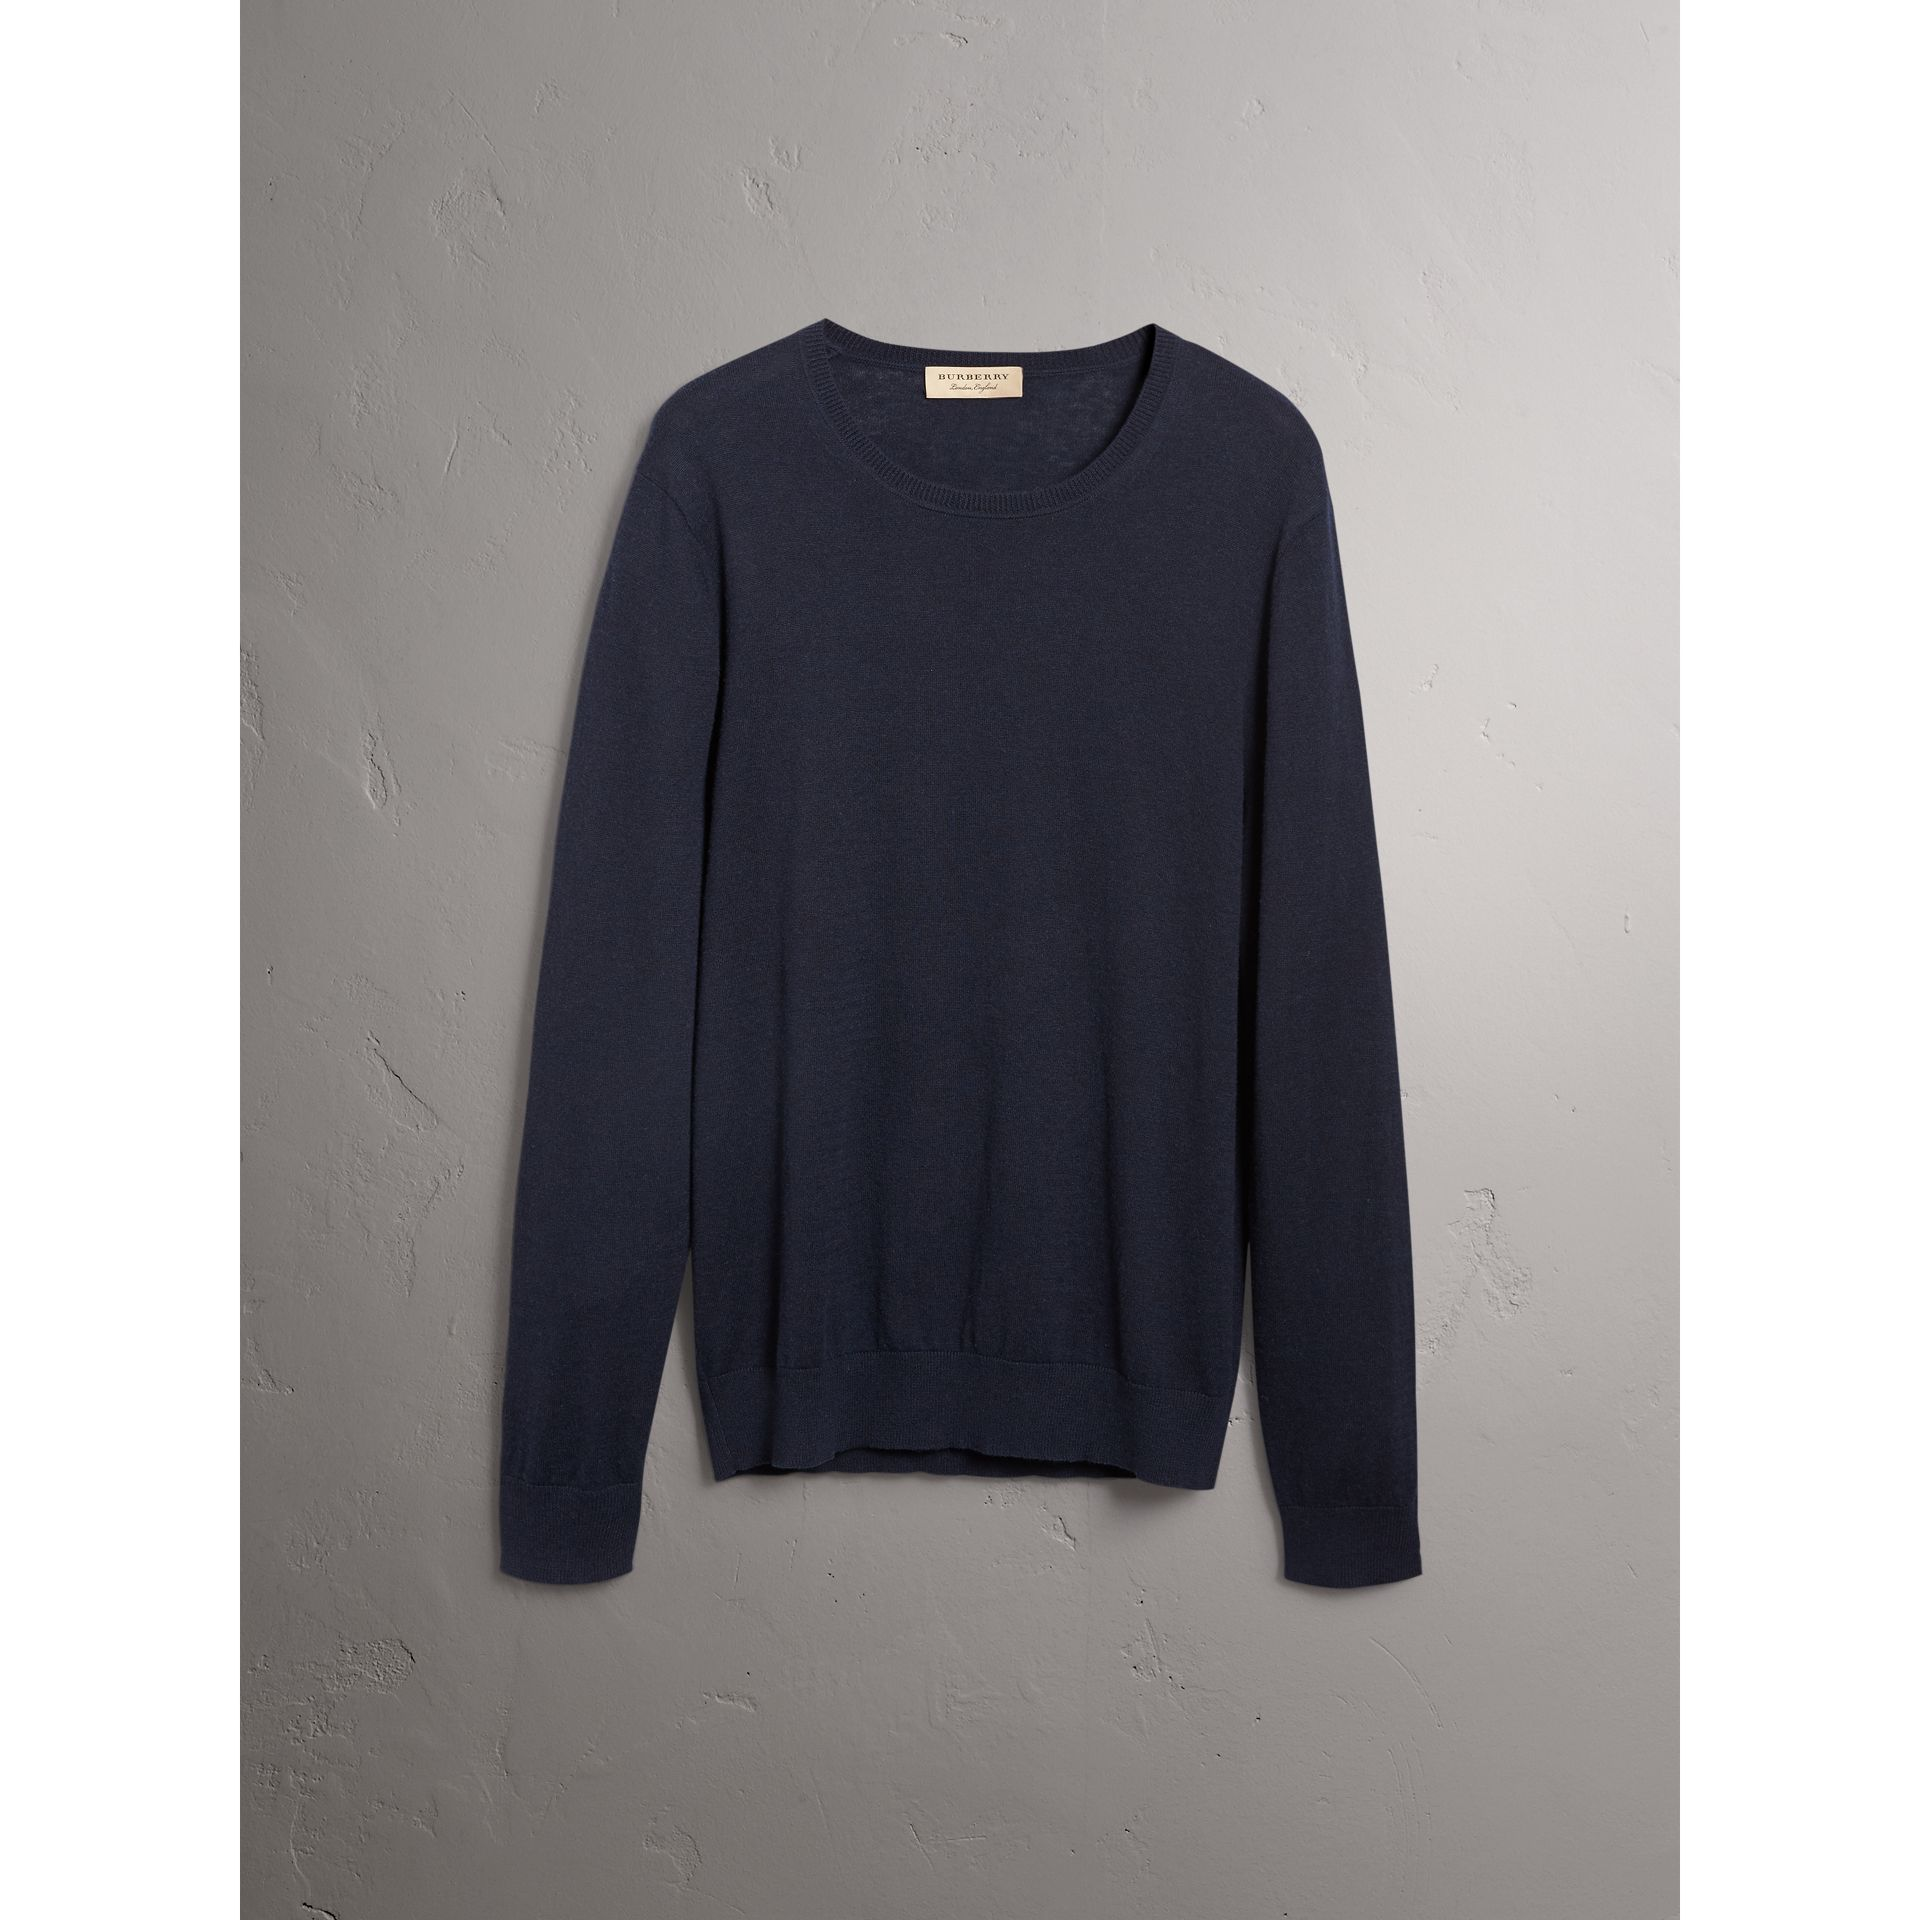 Check Trim Cashmere Cotton Sweater in Navy - Men | Burberry United States - gallery image 4